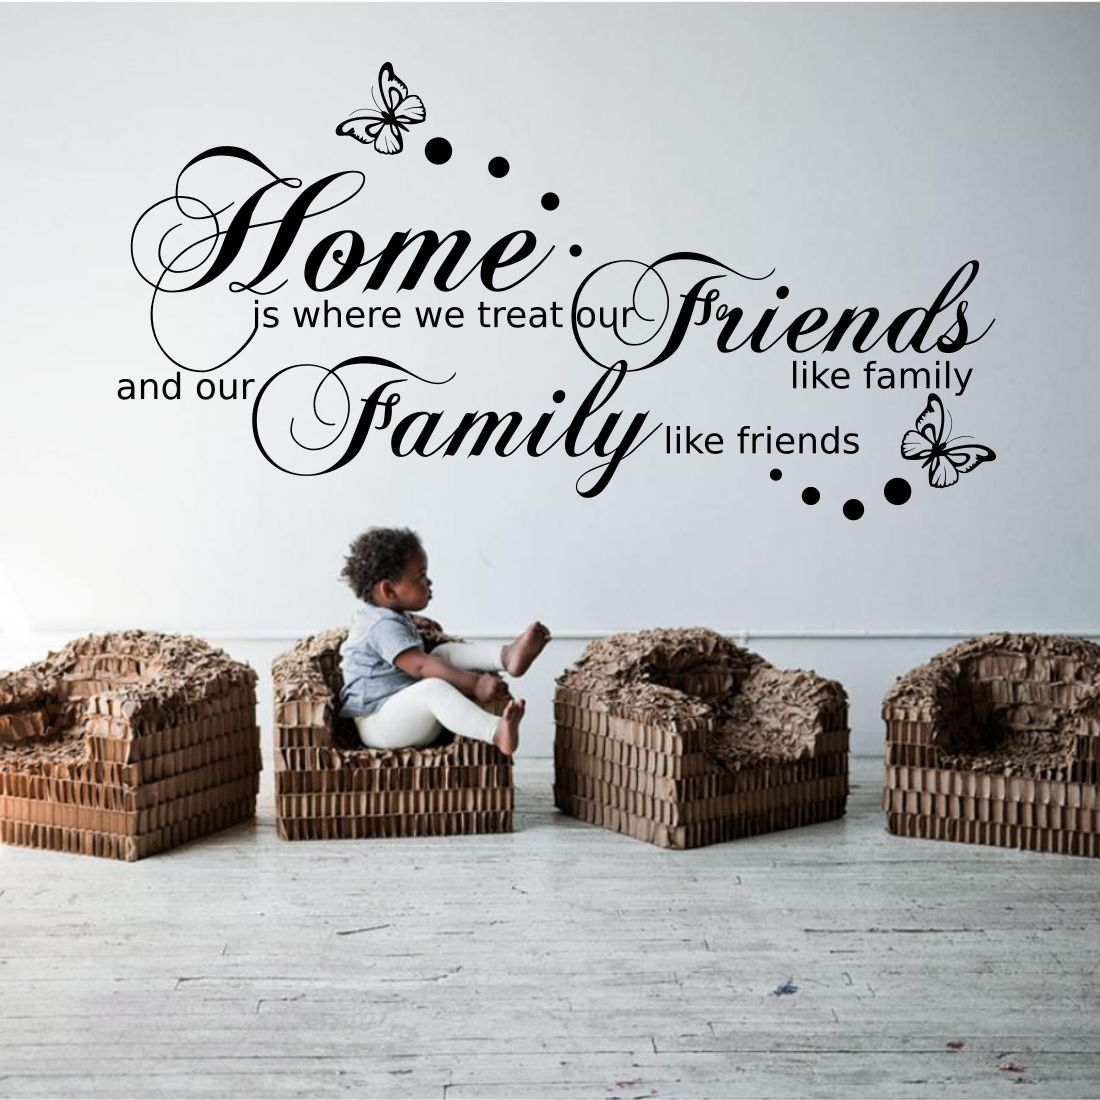 Family Friends Wall Decor : Family friends home quote wall art sticker transfer decal